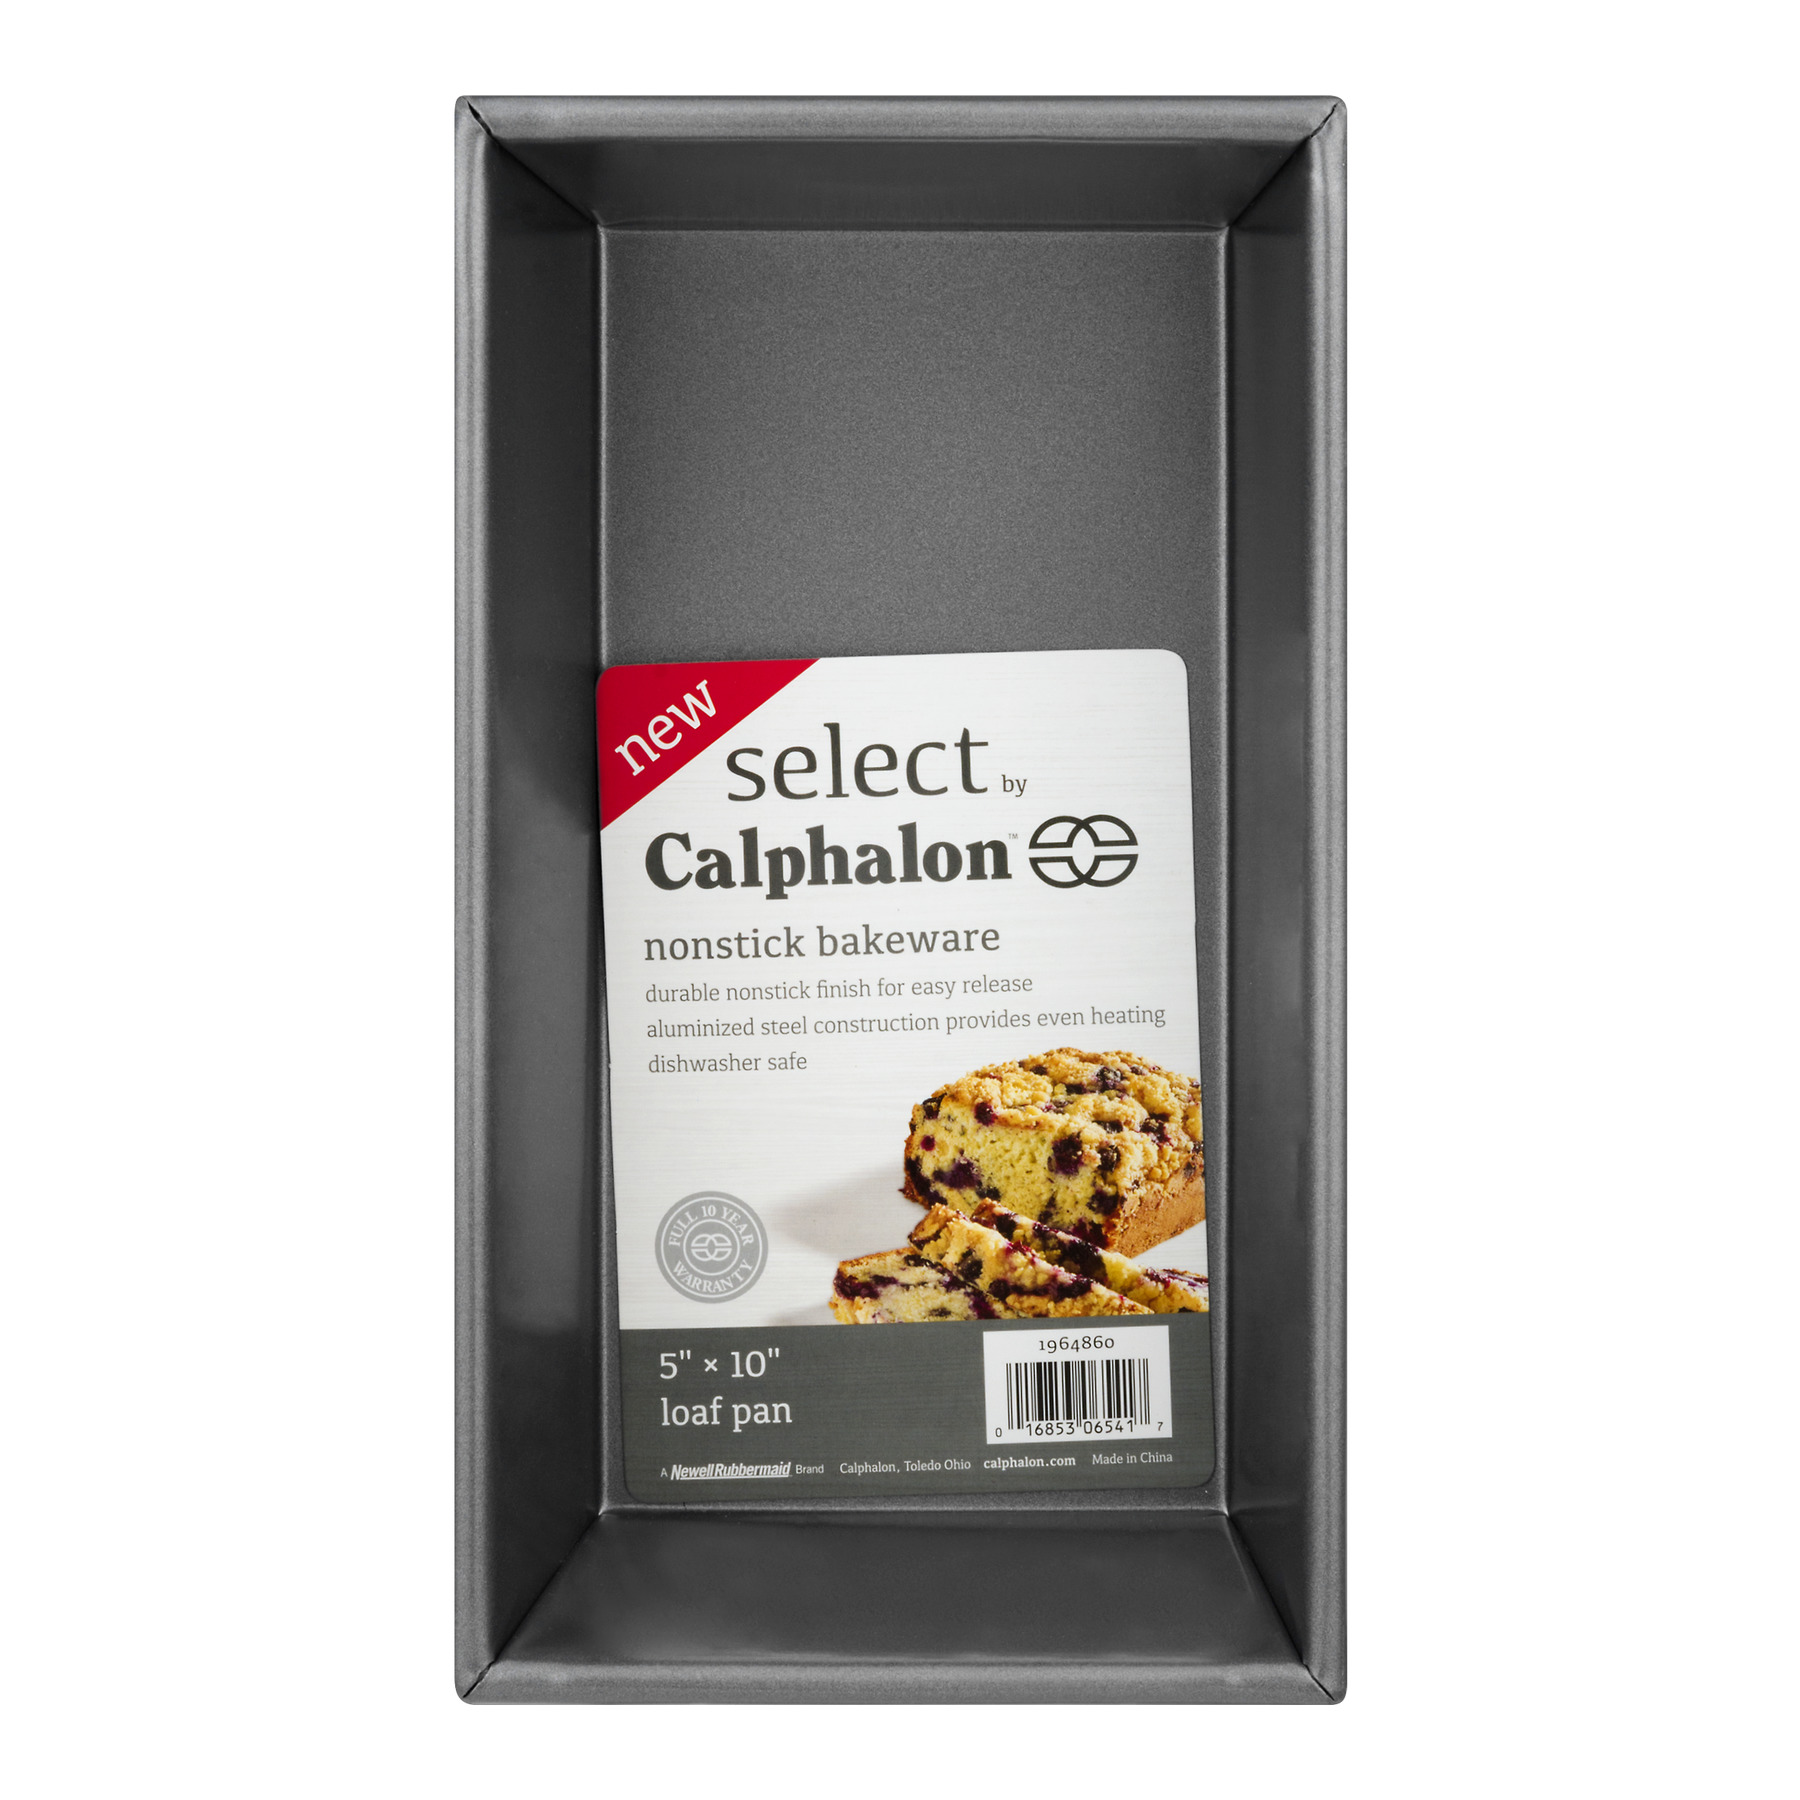 "Select by Calphalon Nonstick Bakeware 5"" x 10"" Loaf Pan, 1.0 CT"